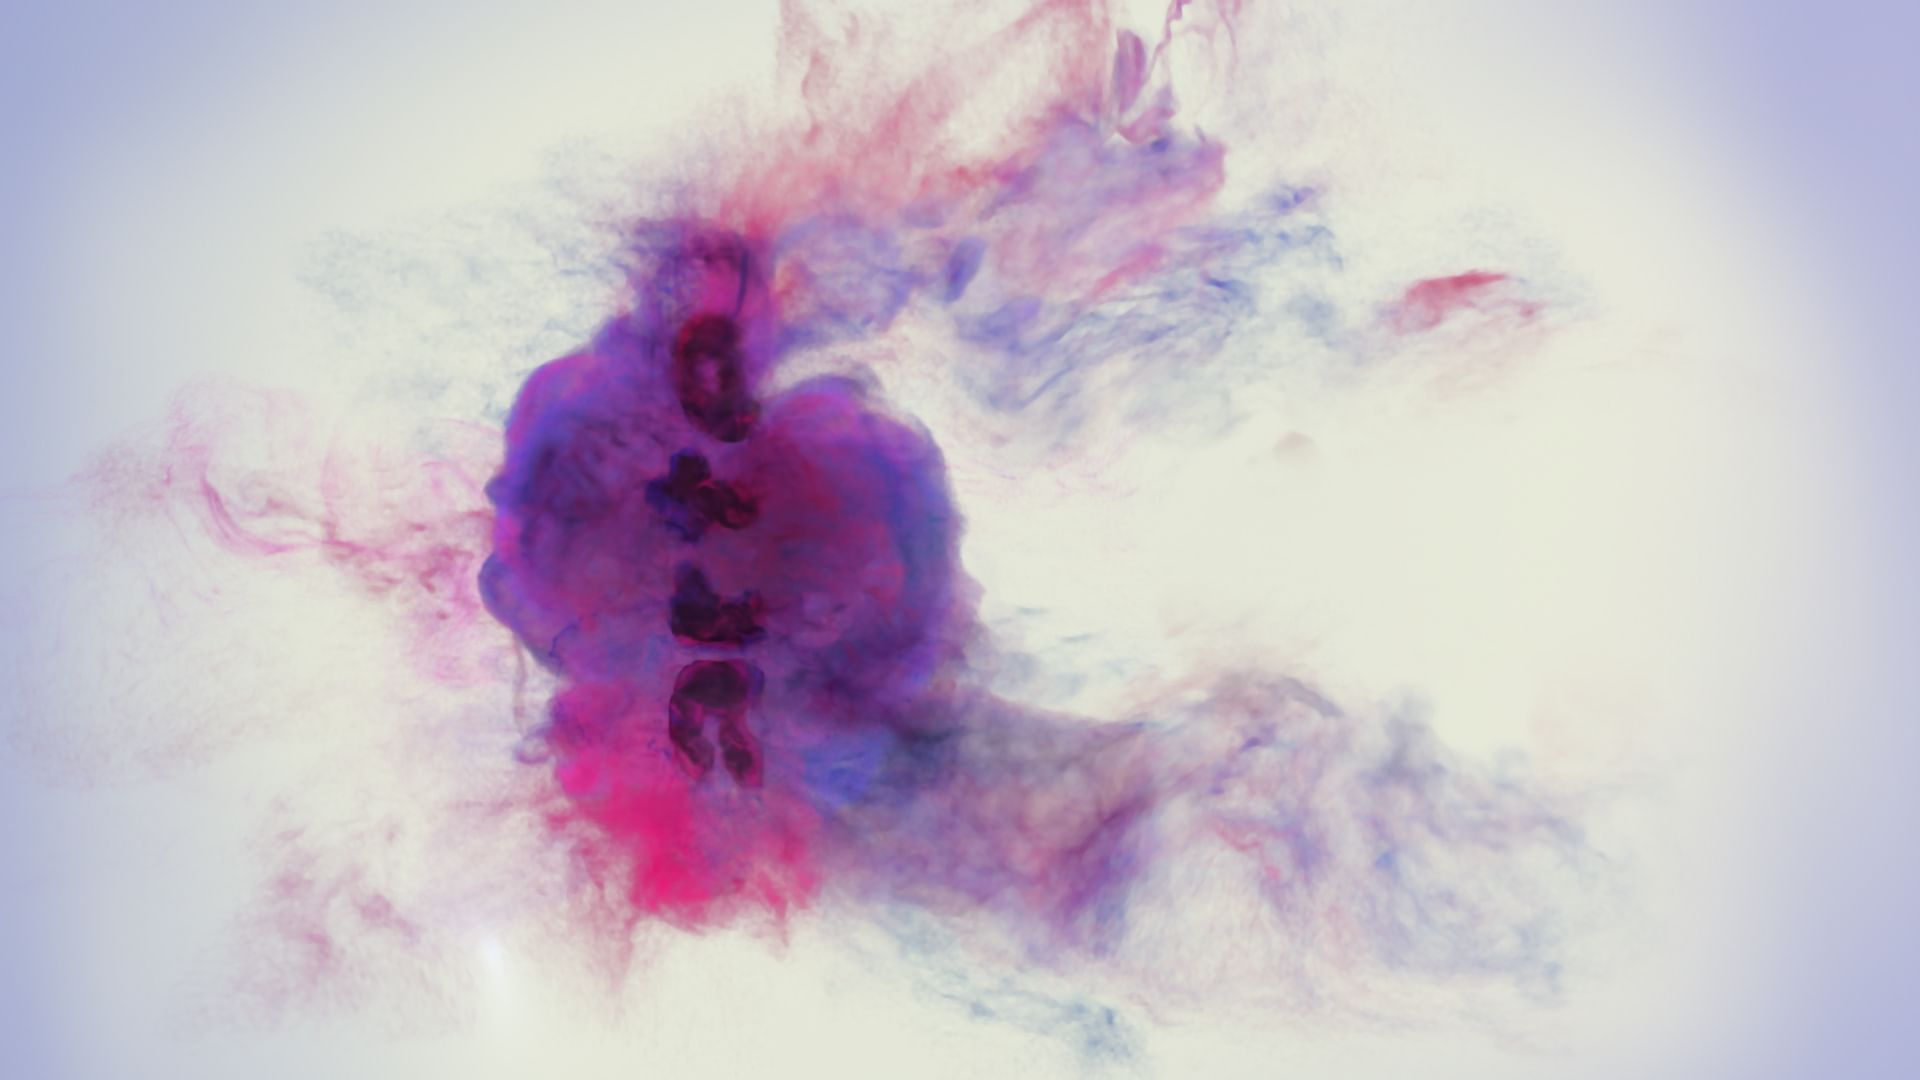 France and Germany may be neighbours, but that doesn't mean that they understand each other any better. Karambolage is a chronicle of French and German idiosyncrasies. Whatever side of the Rhine you happen to be on, Karambolage has got you covered.